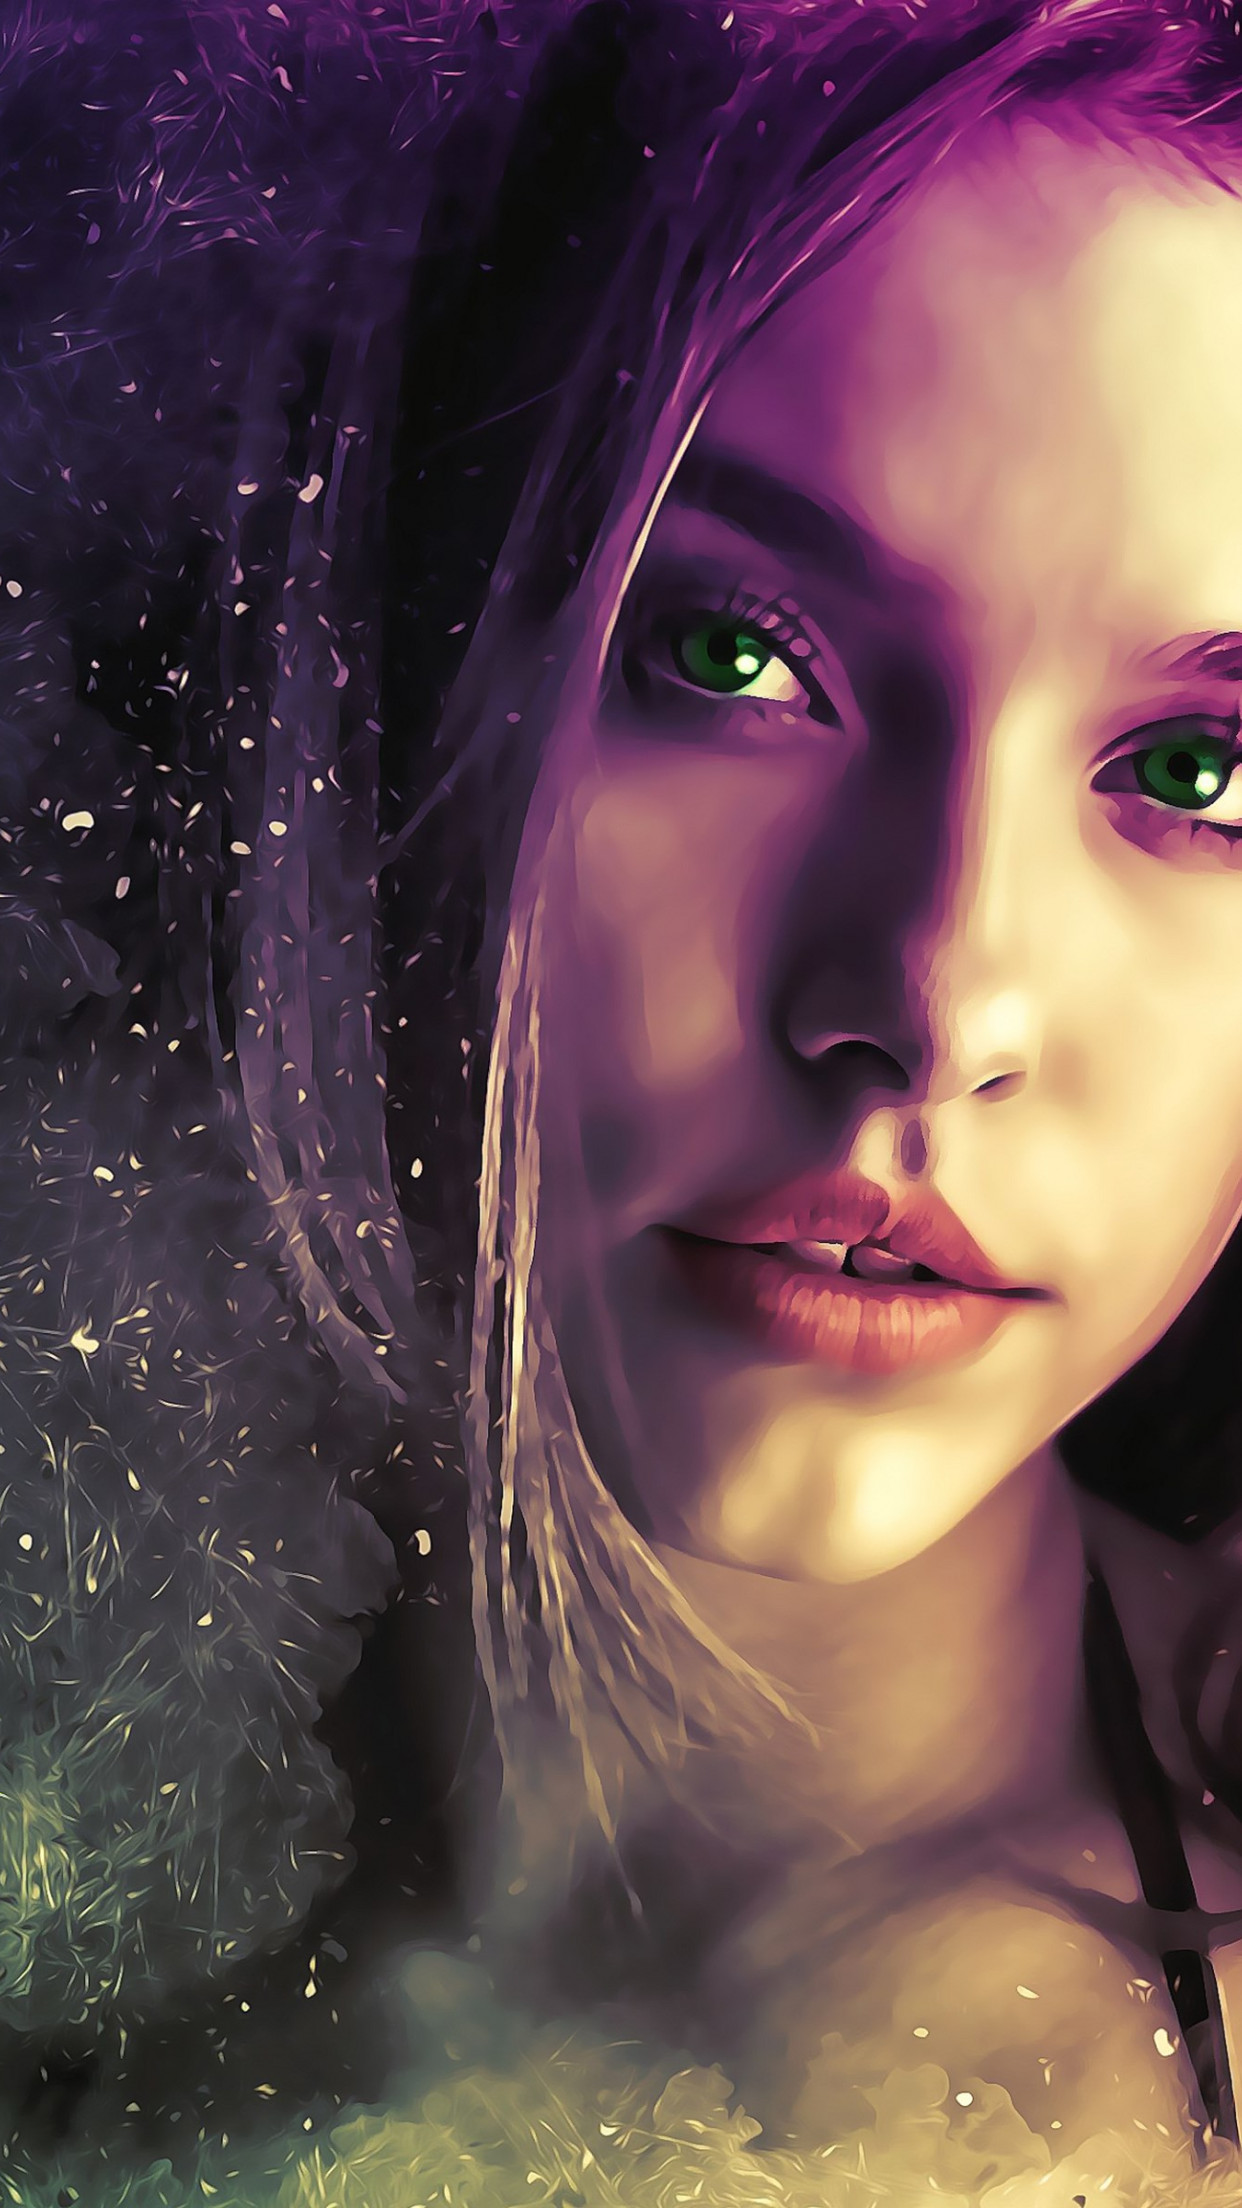 Beautiful illustration with a girl portrait wallpaper 1242x2208